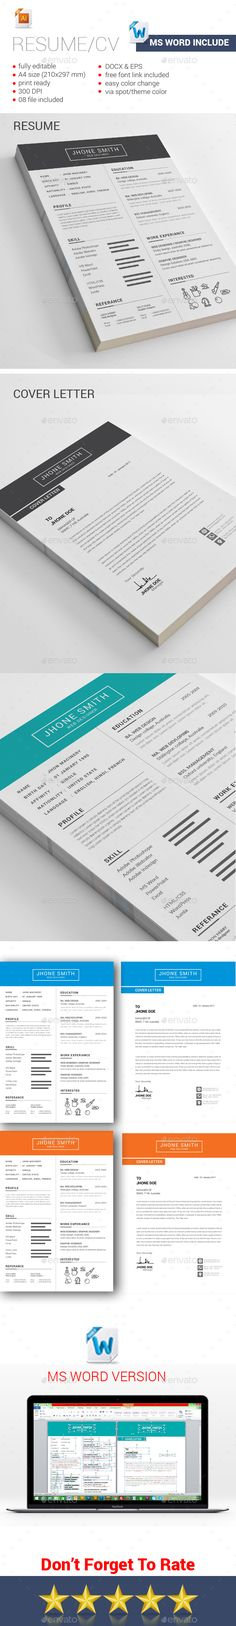 Pin By Pabloperez On Curriculum Vitae    Cv Template